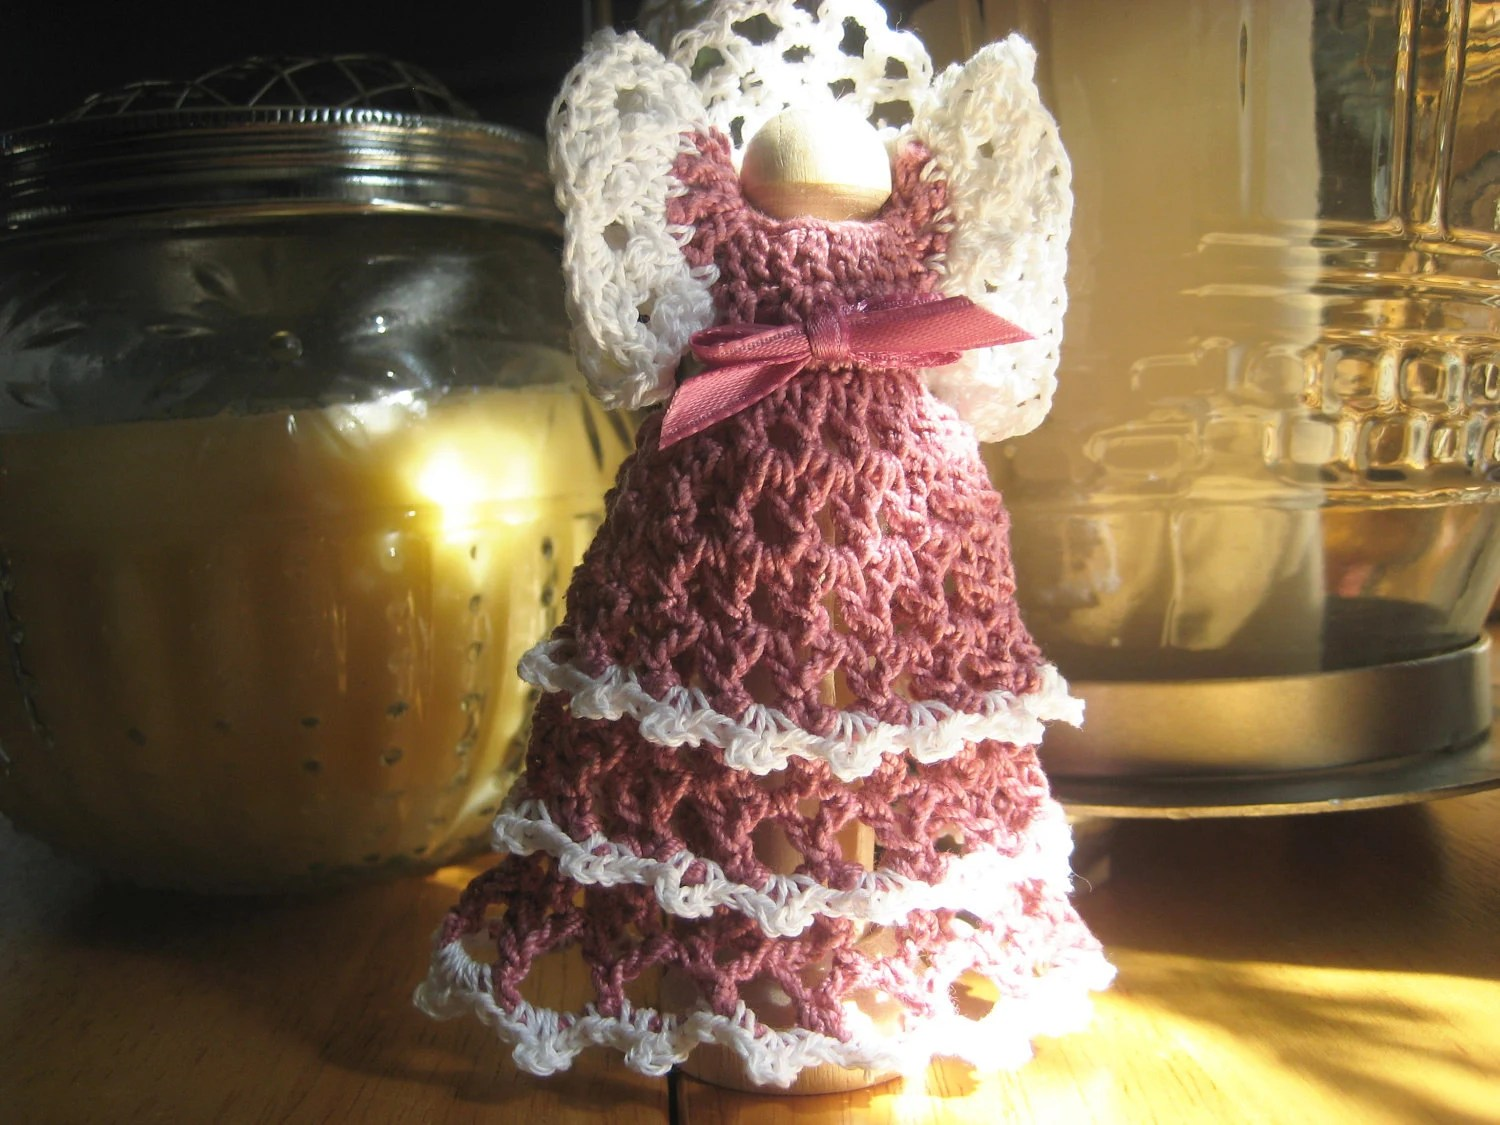 Mauve Handmade Crochet Clothespin Angel Ornament with Stand